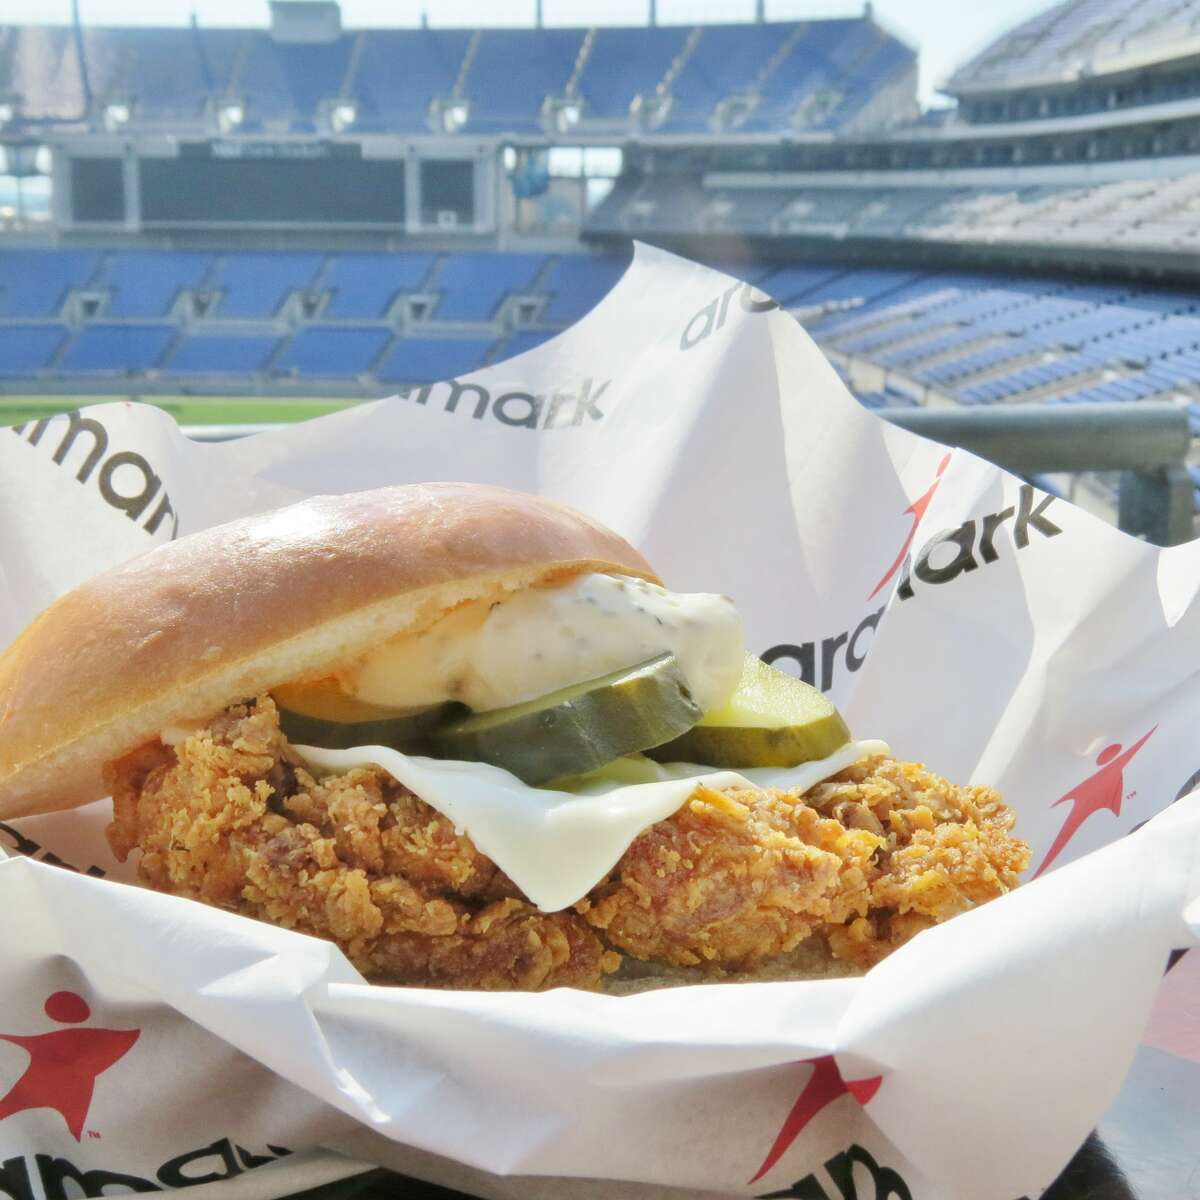 Yard Bird 2 - M&T Bank Stadium Pickle brined fried chicken breast with Monterey jack cheese, dill pickles and black pepper mayo on a brioche roll.